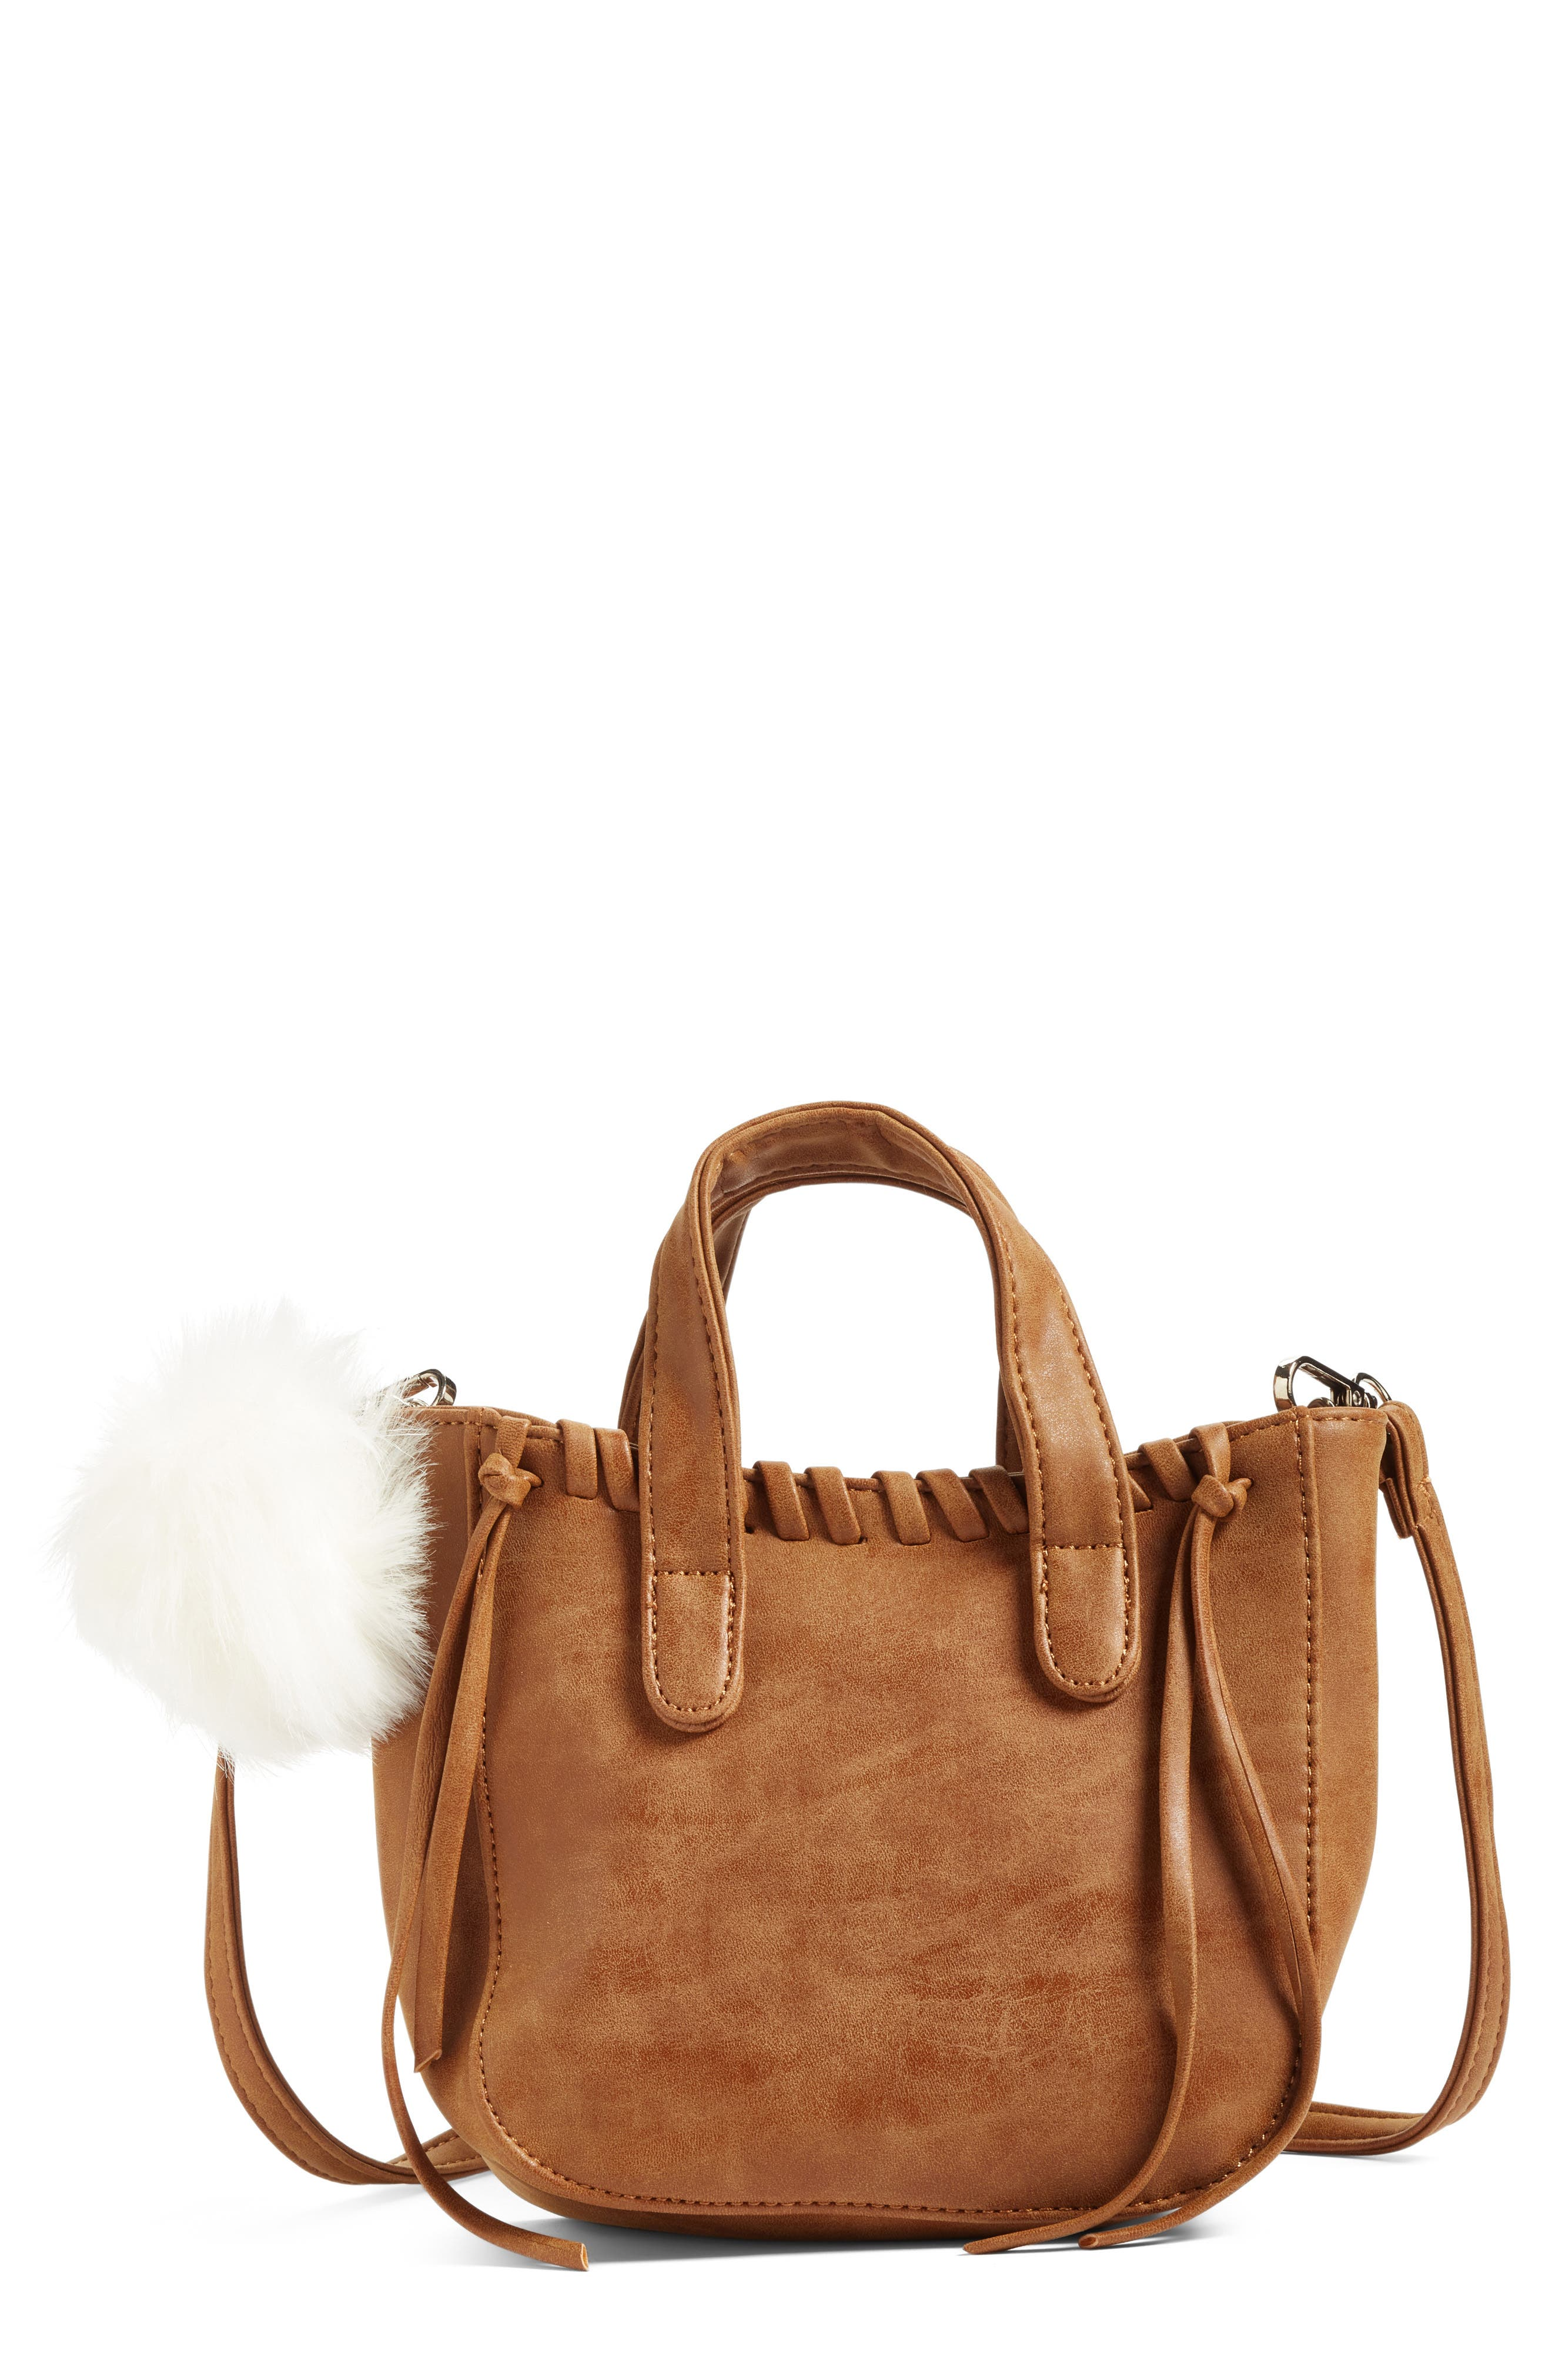 Main Image - OMG Faux Leather Shoulder Bag with Faux Fur Bag Charm (Special Purchase)